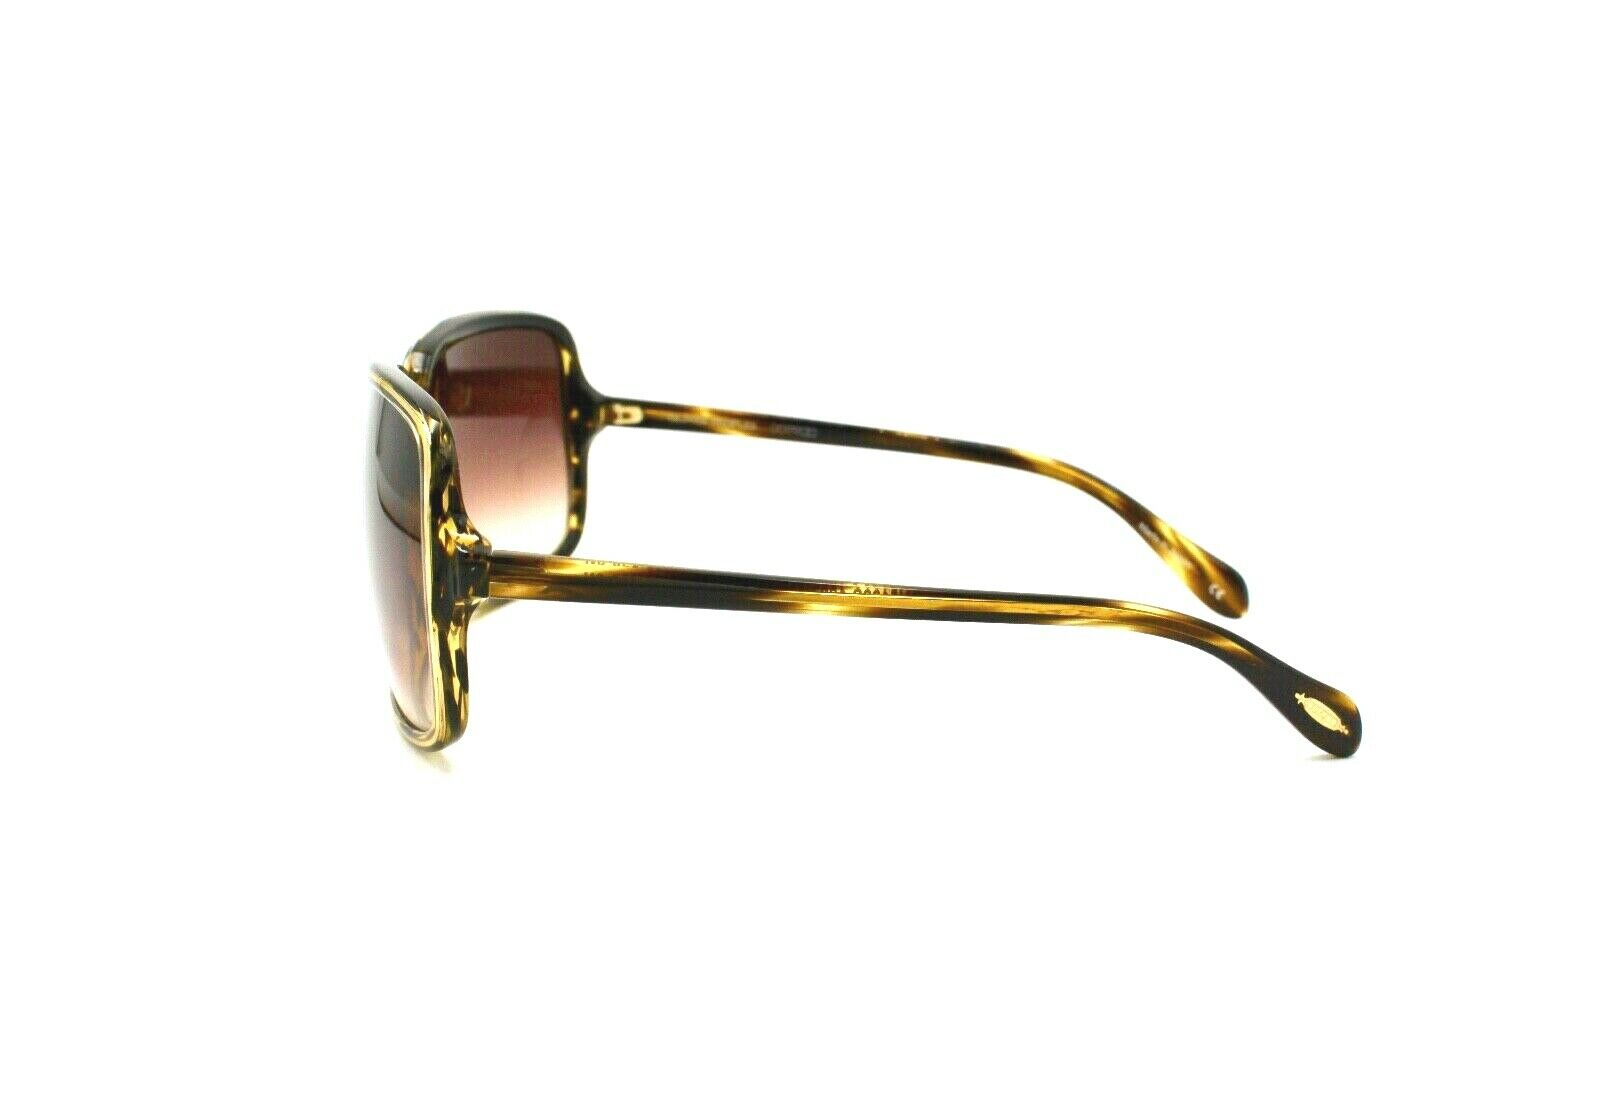 Oliver Peoples Sunglasses OV5132S 1003/13 Anisette 60 16-130 3N Made in Japan - Mydesigneroptic